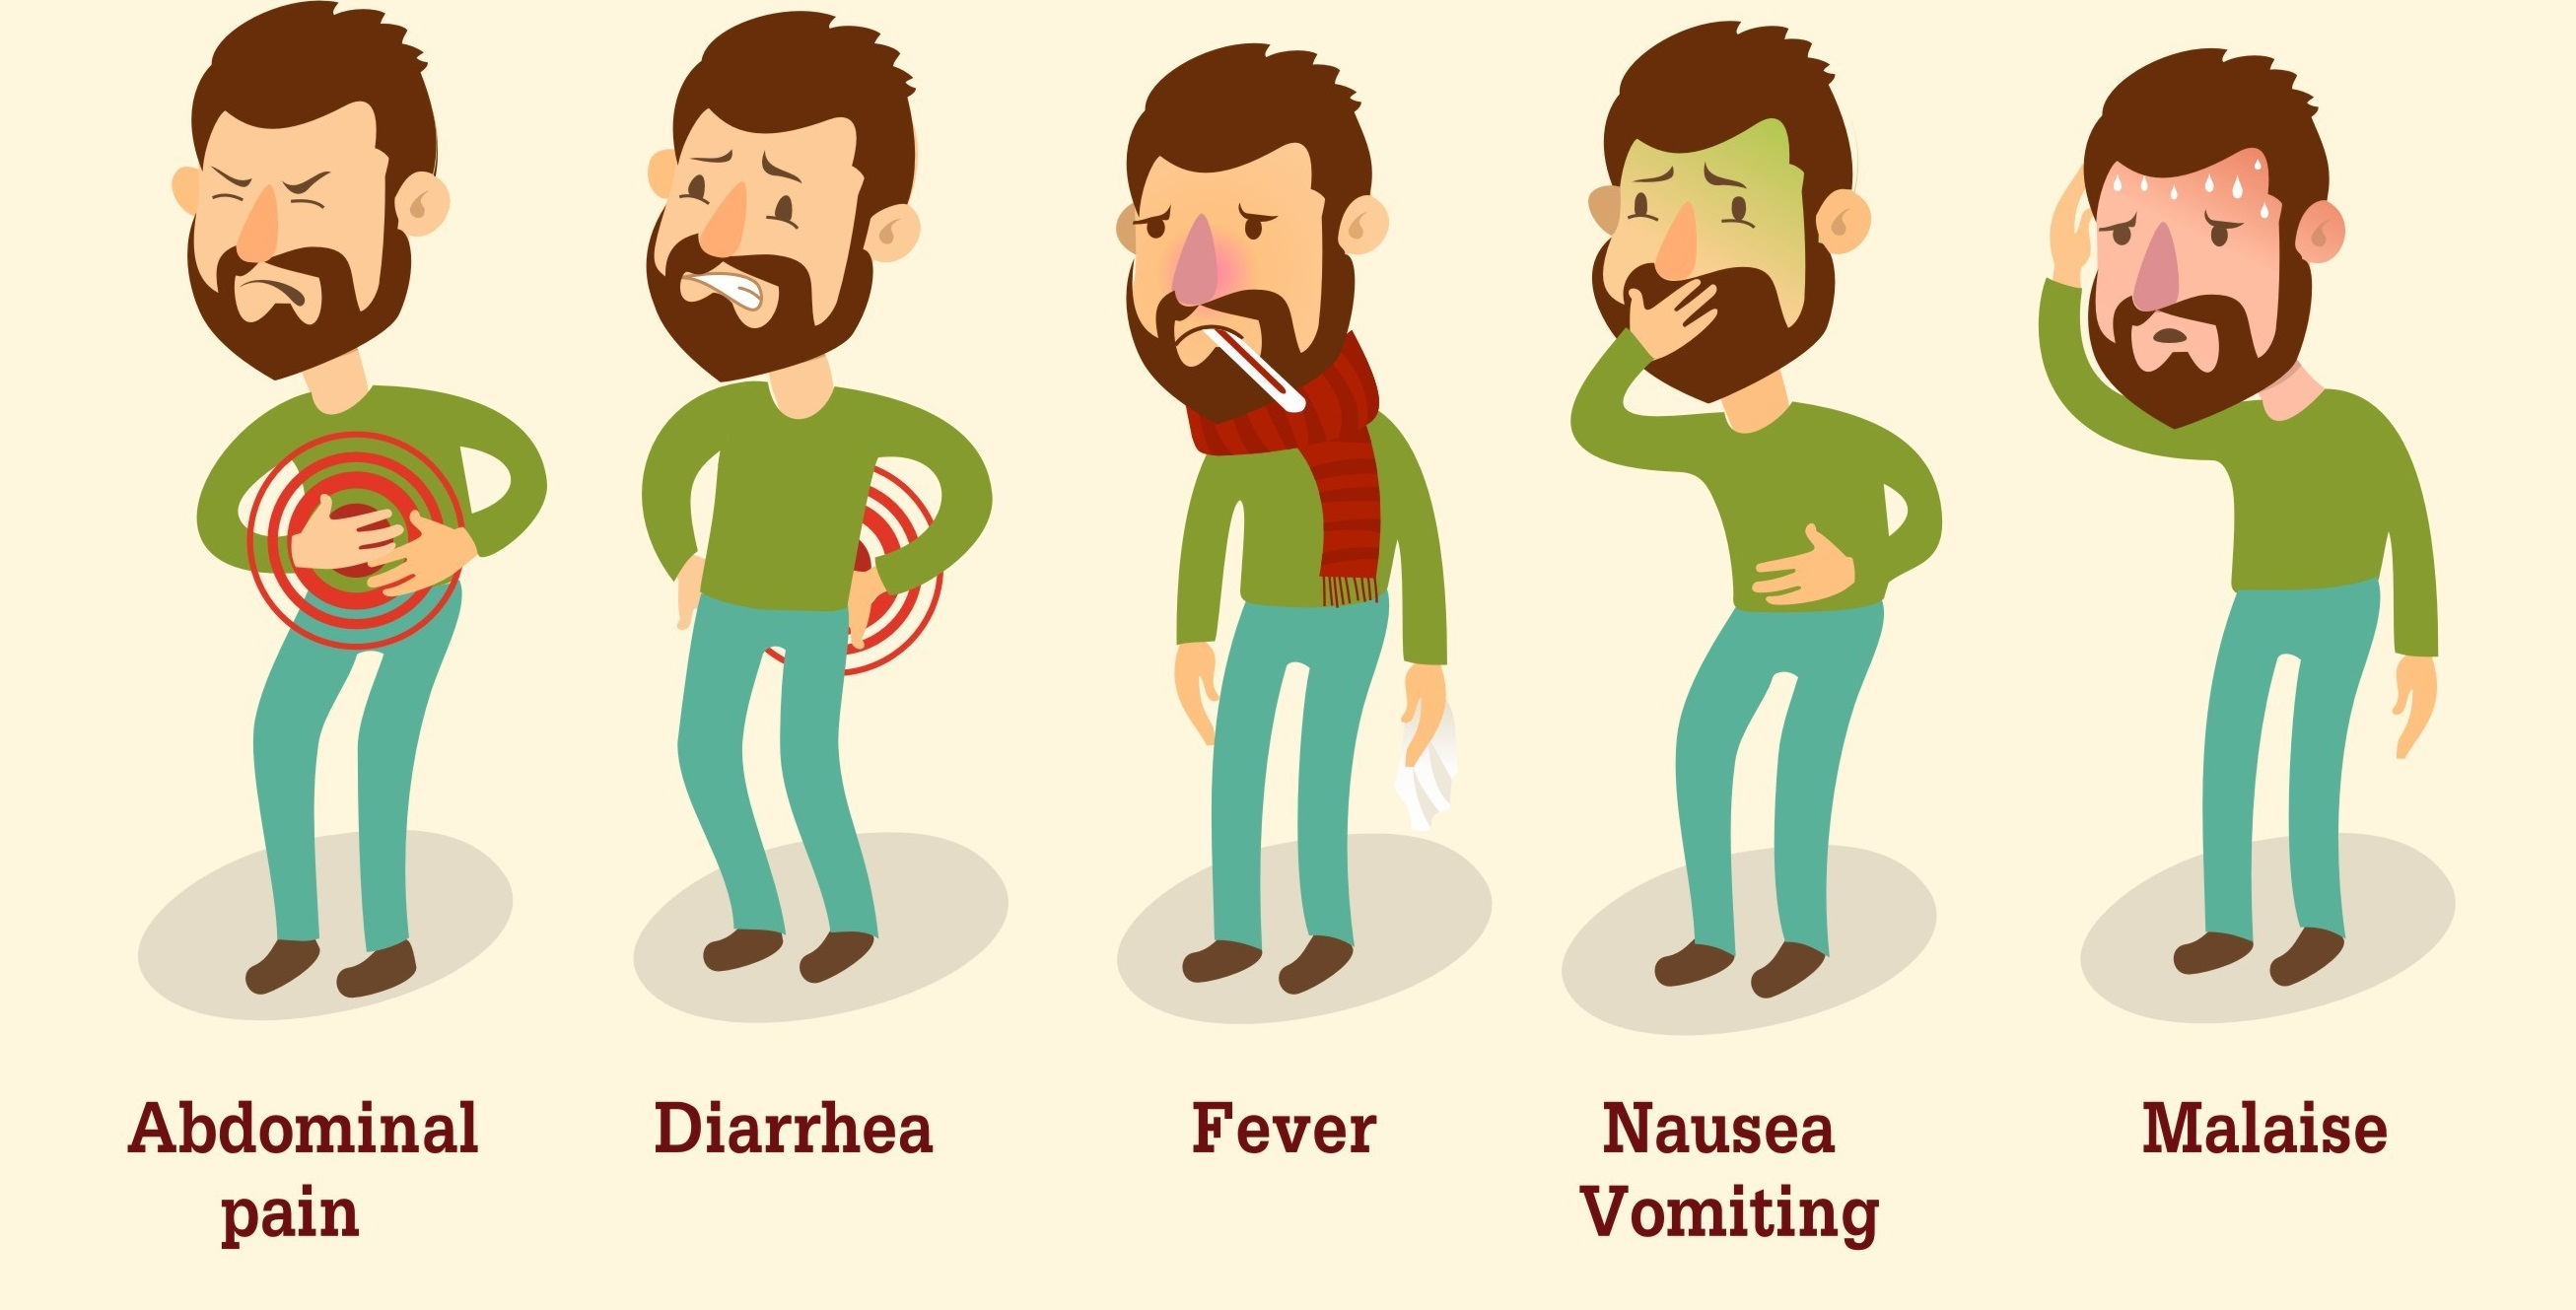 Food poisoning symptoms and signs